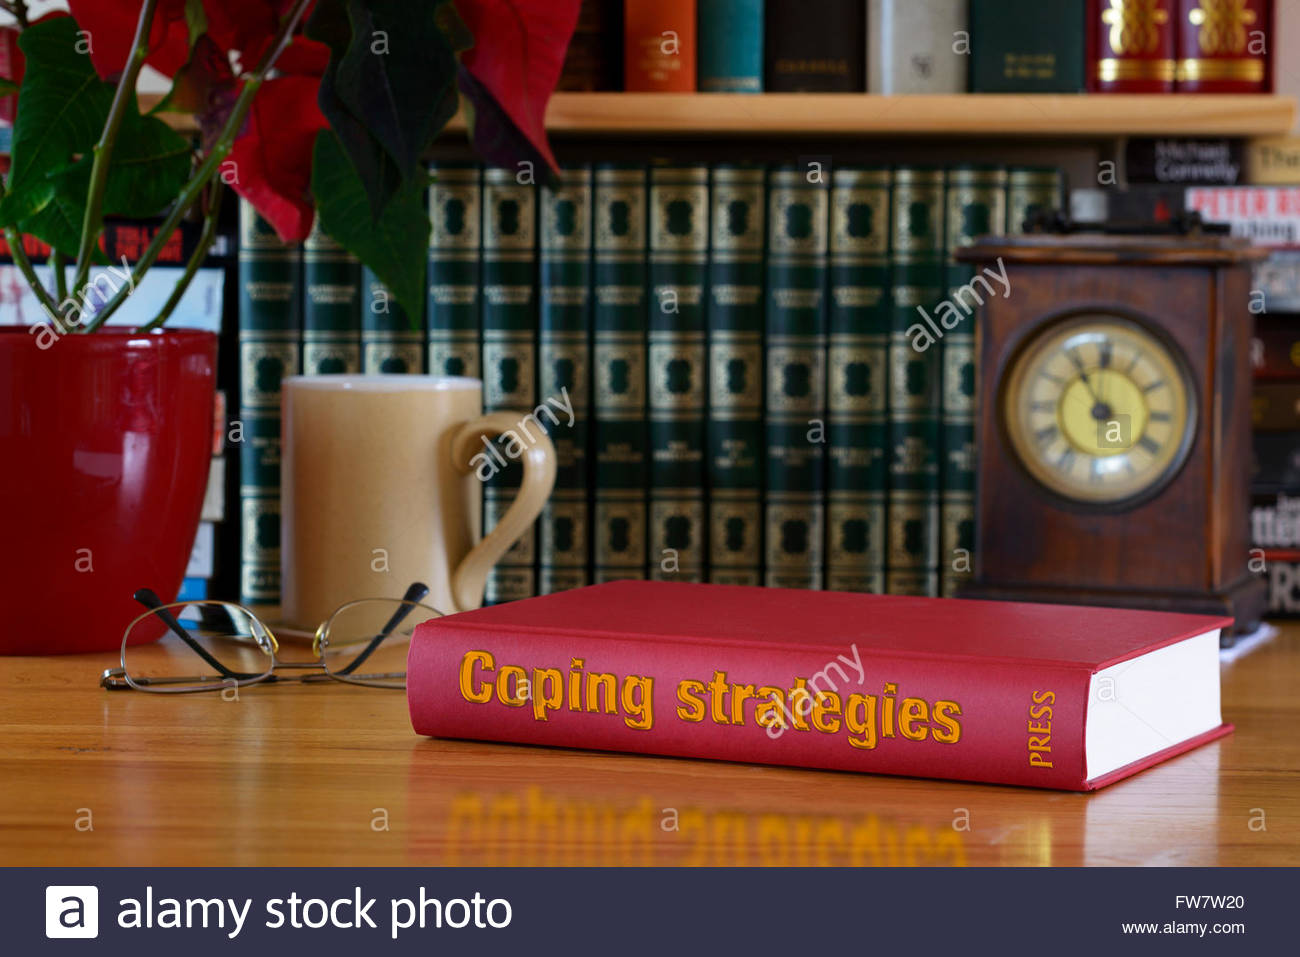 Coping strategies book title, stacked used books, England - Stock Image